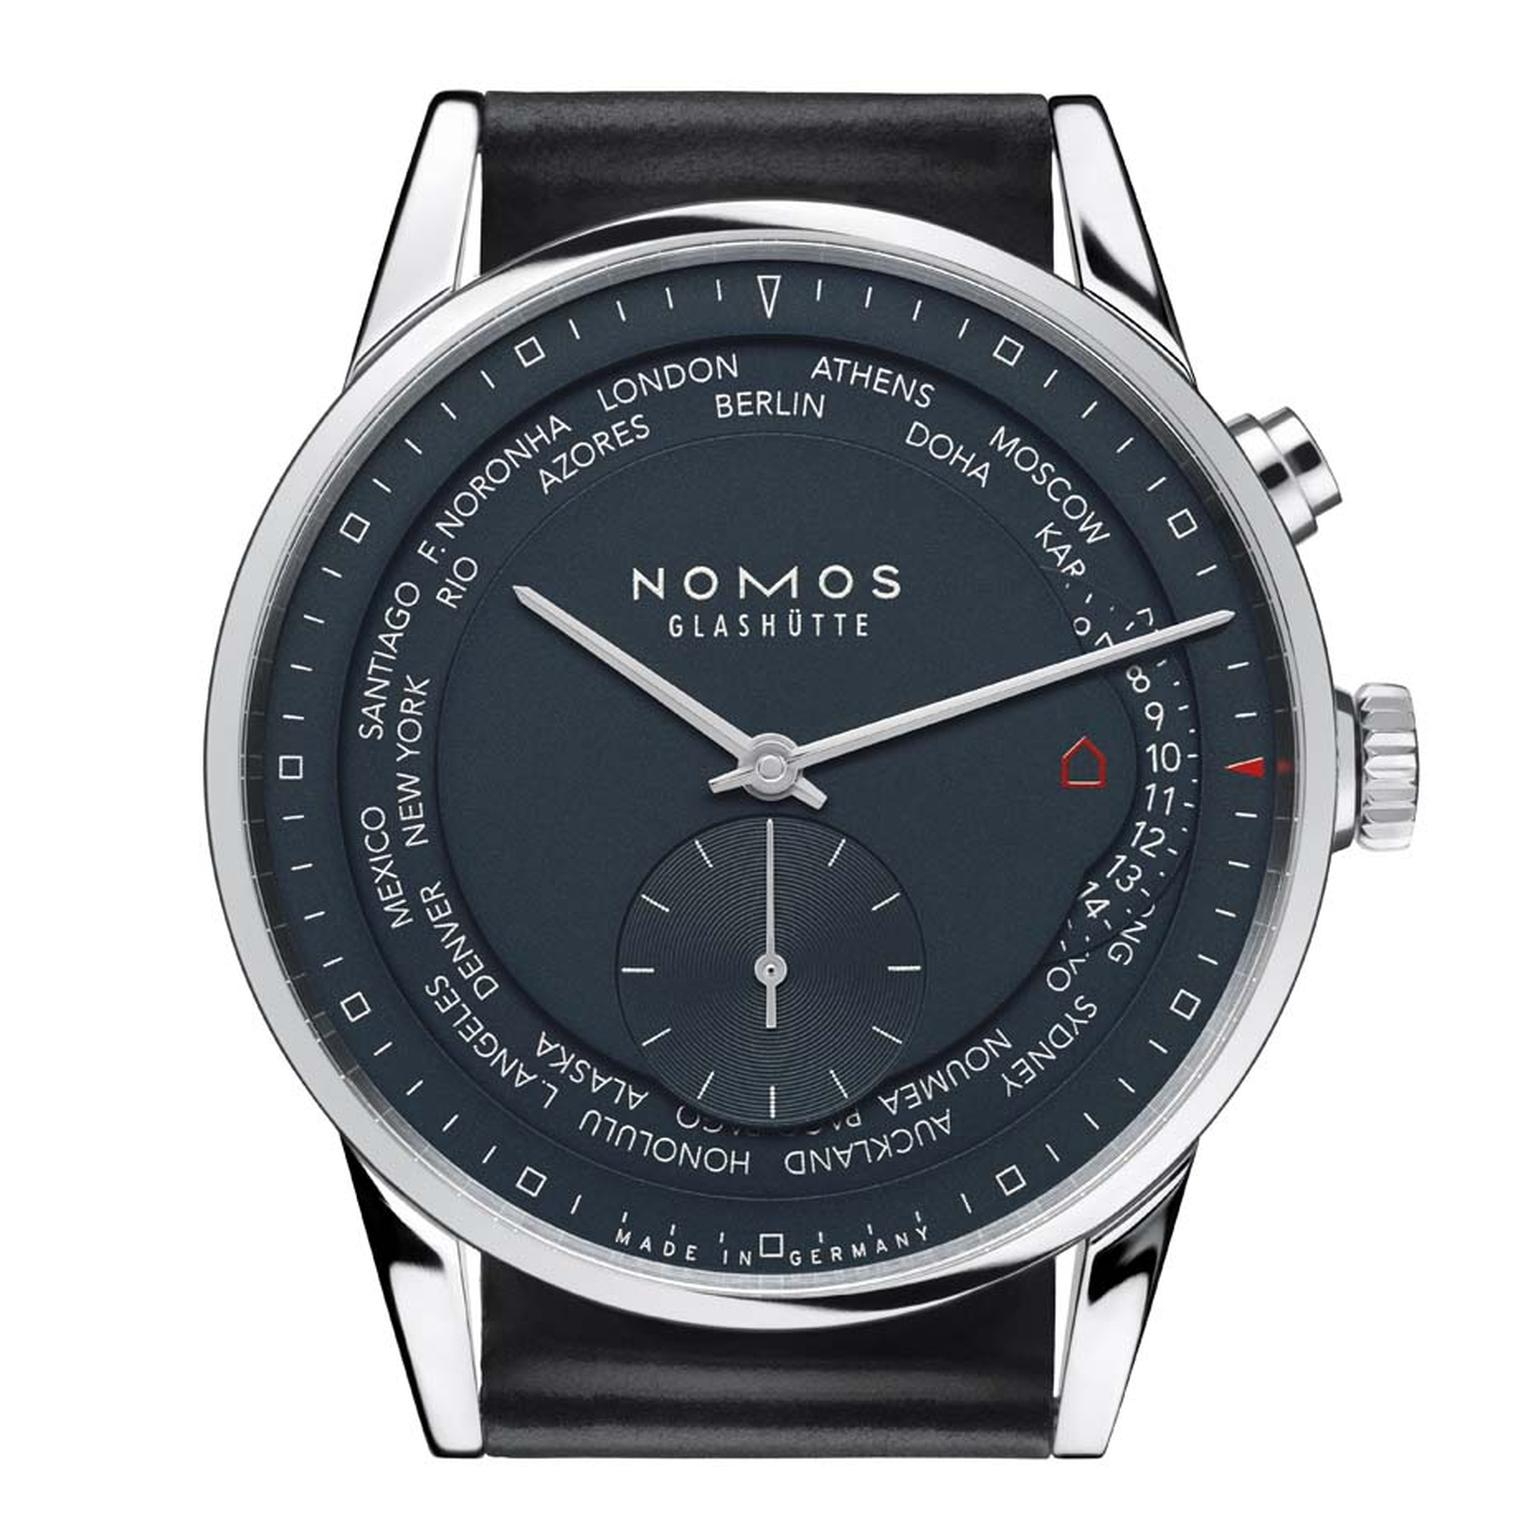 The Nomos Zurich Worldtimer Trueblue watch features 24 time zones on its dial. In spite of its technical complexity, the watch is faithful to the company's minimalist Bauhaus aesthetic. Inside the 39.9mm stainless steel case is Nomos' innovative swing sys